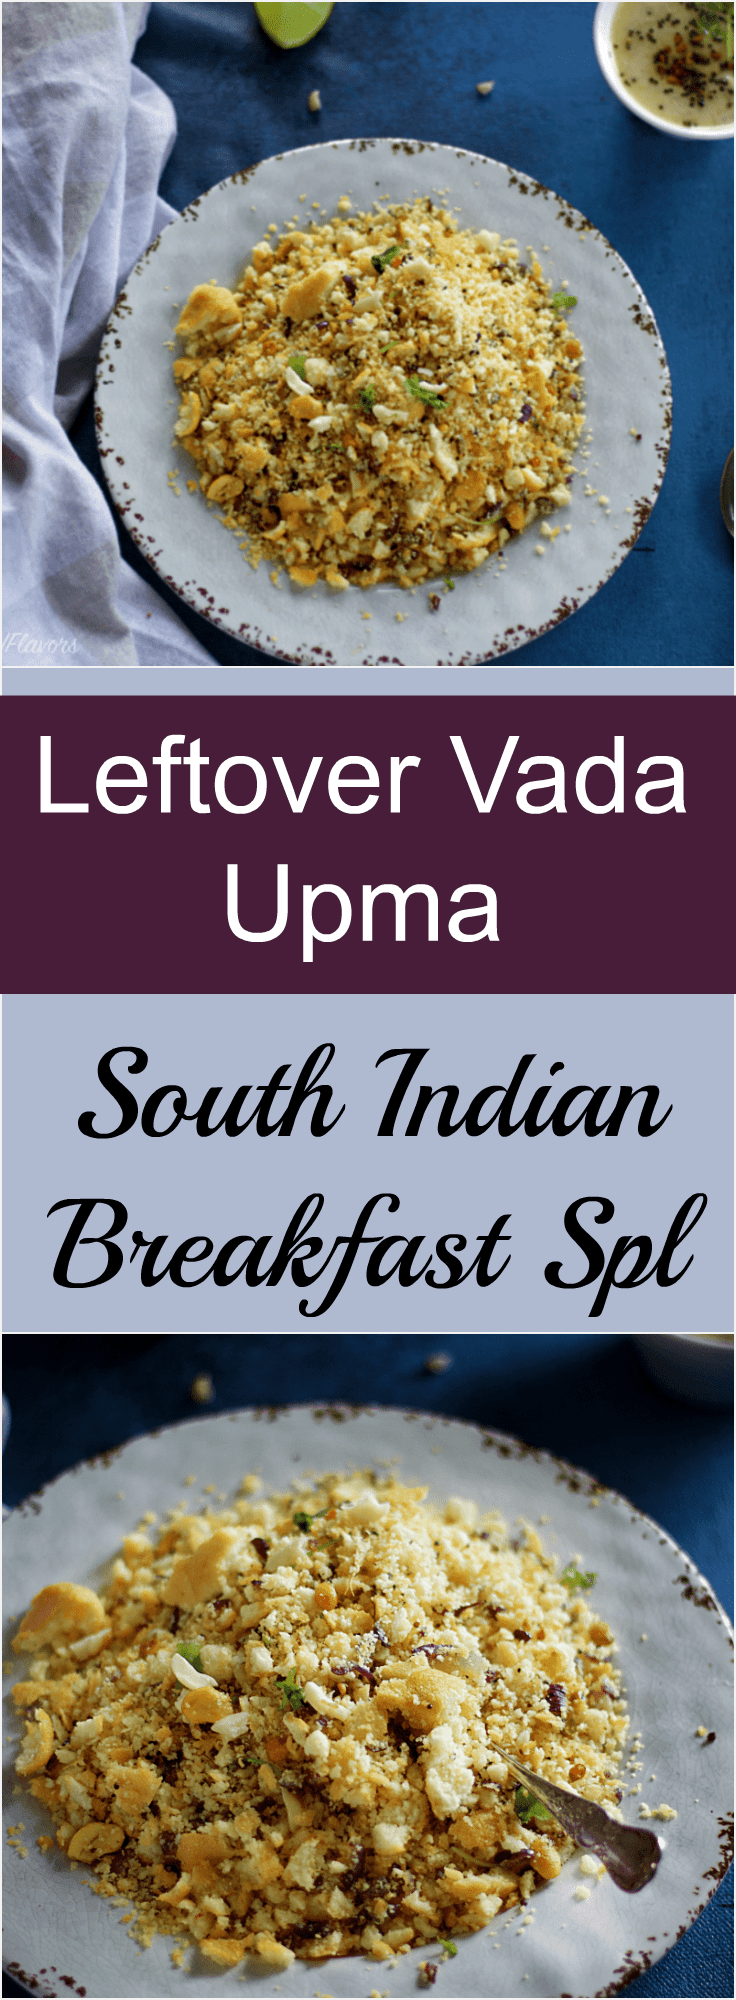 leftover vada upma indian breakfast recipe simple and quick ready in 15 minutes. Food photography